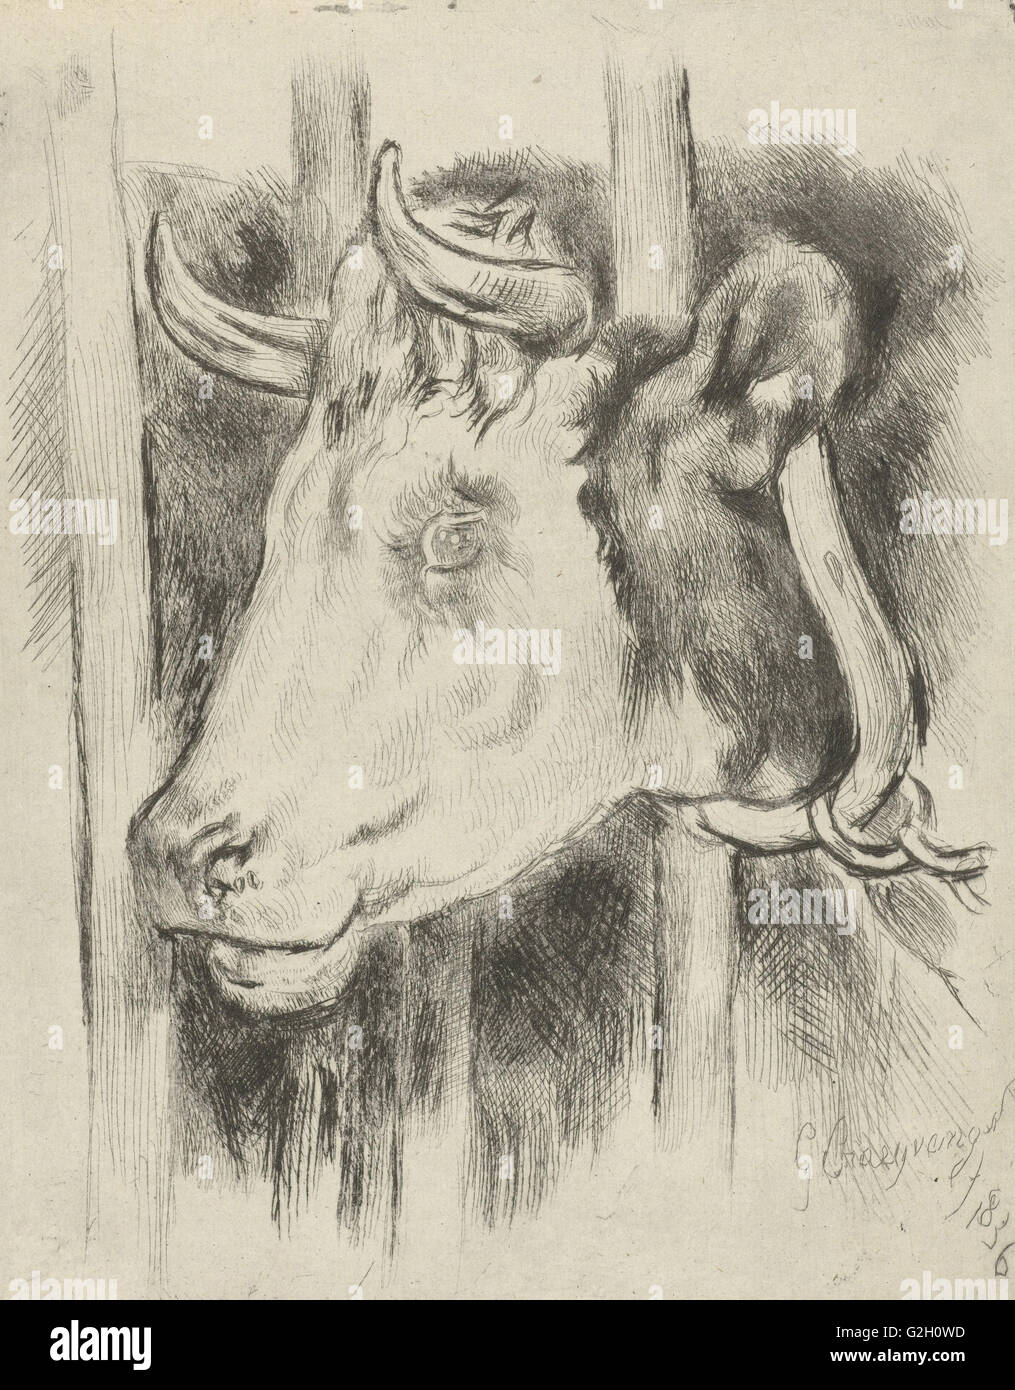 Head of a cow, print maker: Gijsbertus Craeyvanger, 1836 - Stock Image